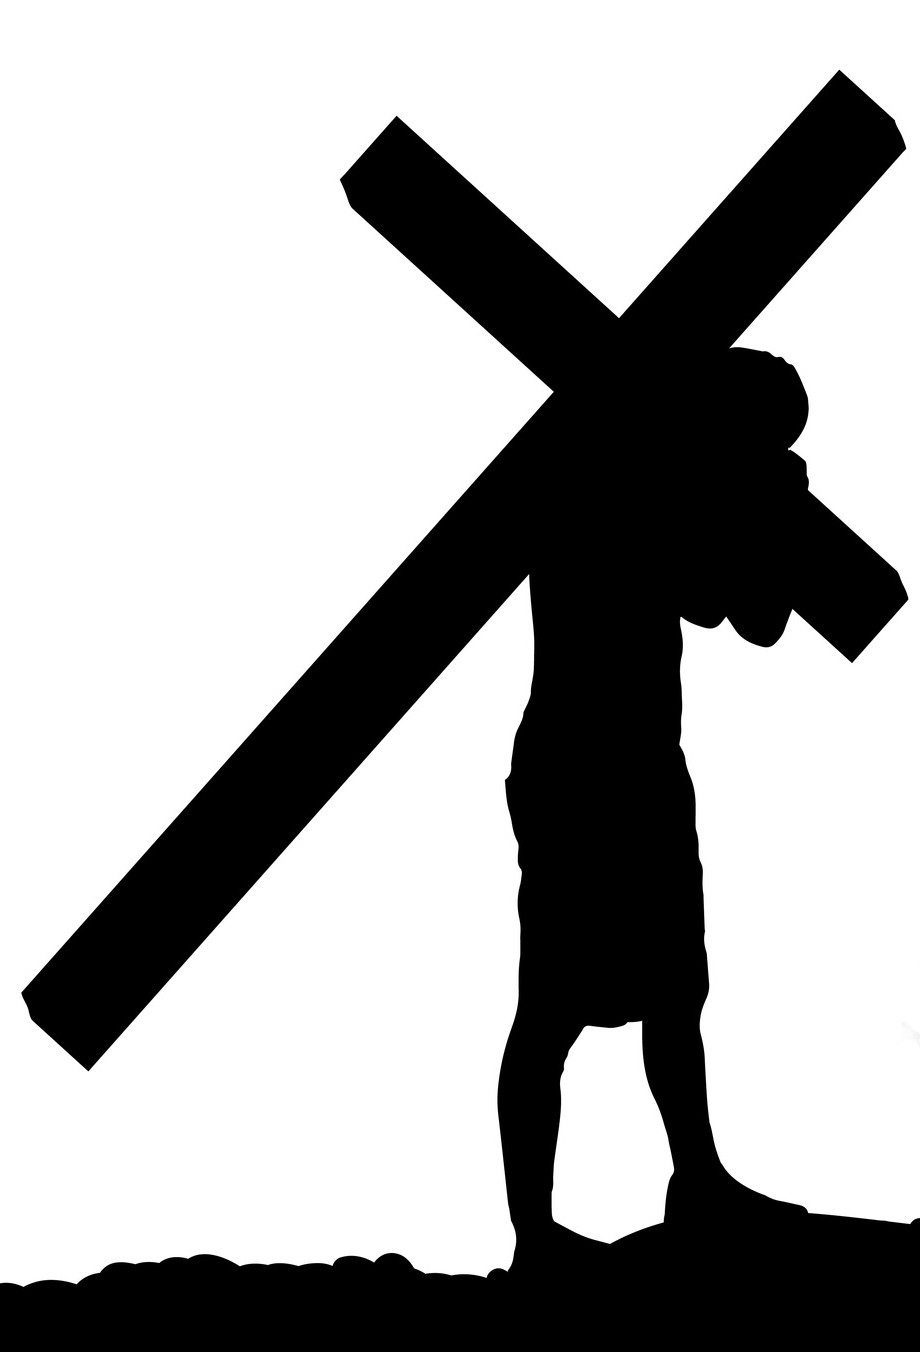 hight resolution of 920x1352 photos stations of the cross clipart drawings art gallery